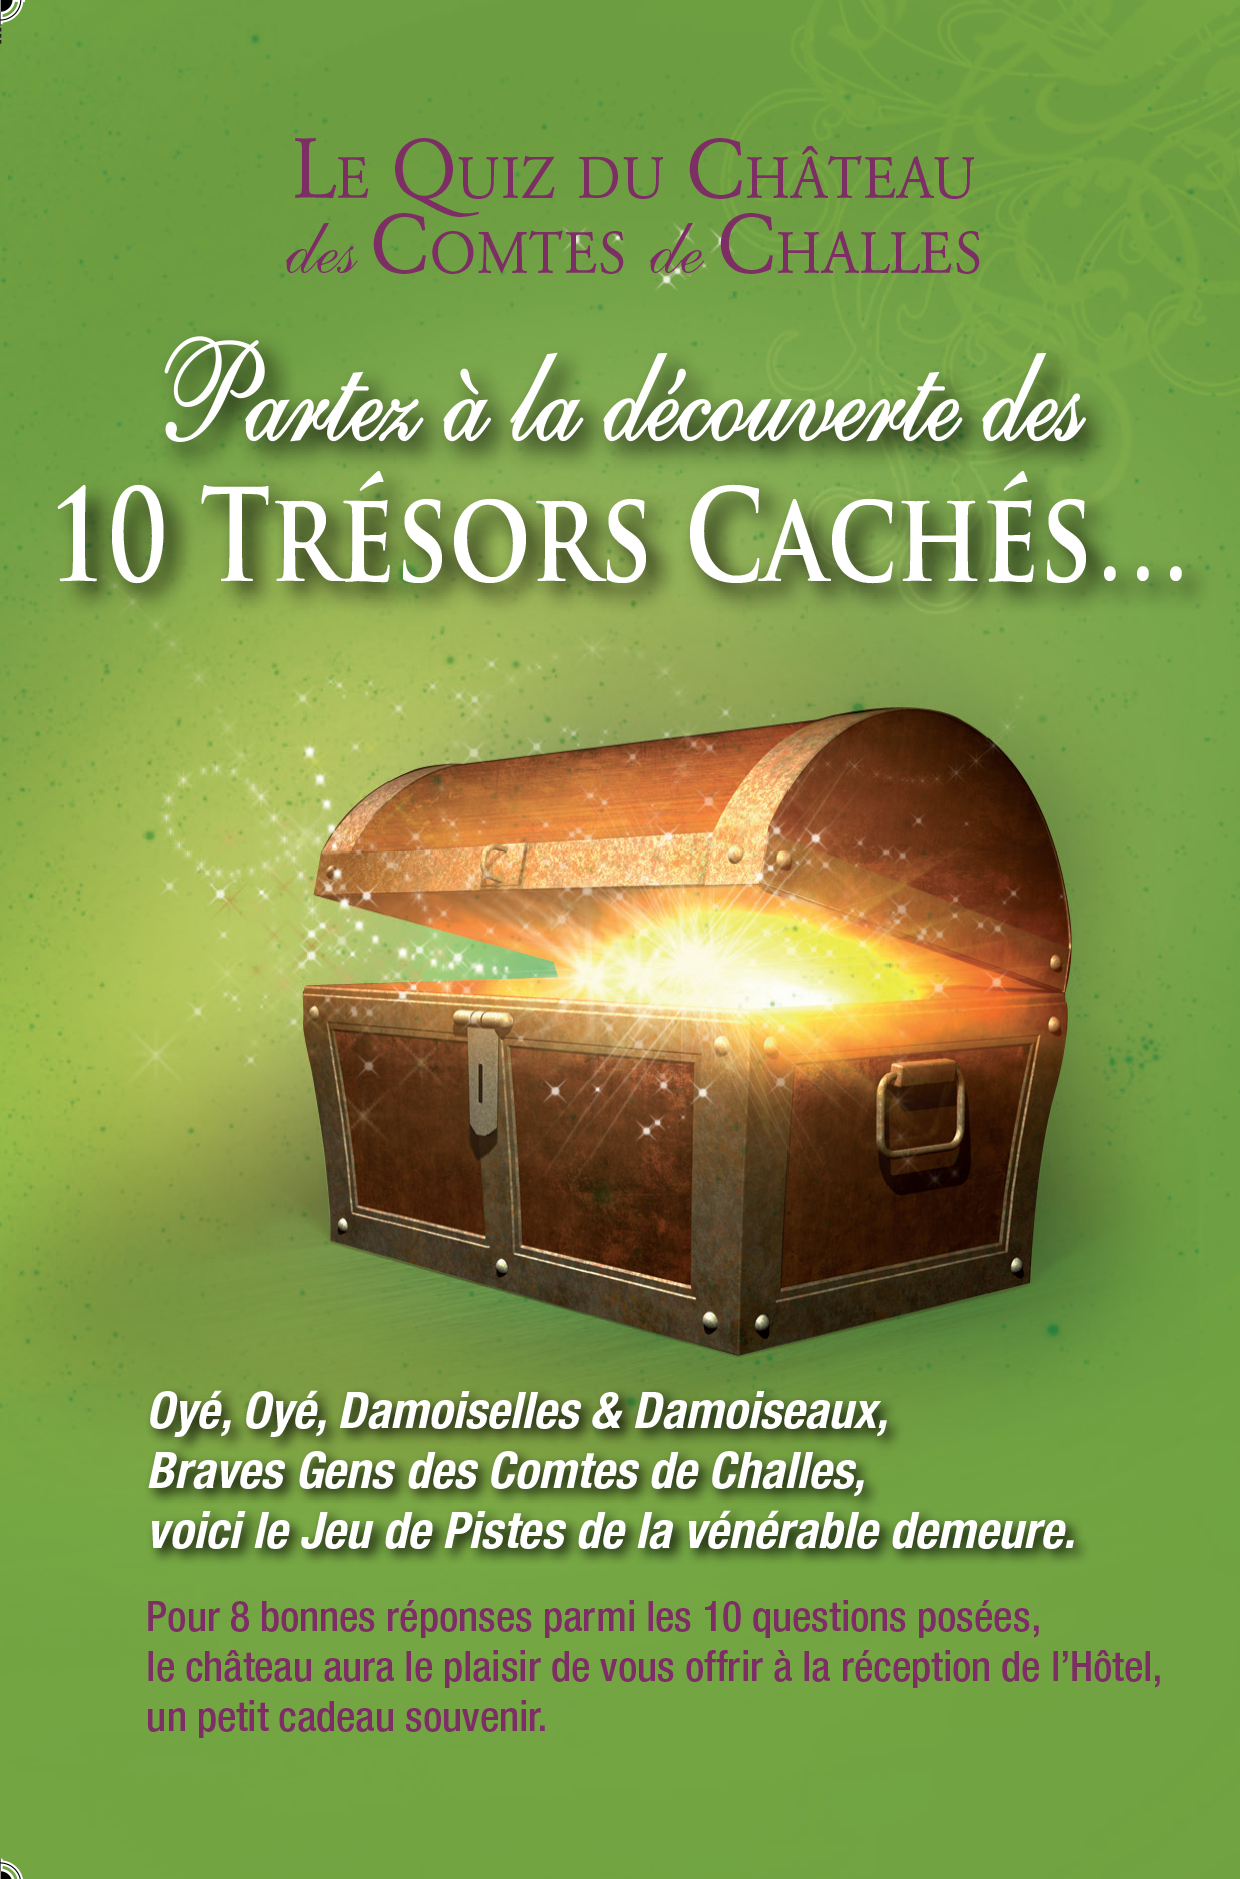 plan-chasse-aux-tresors-2